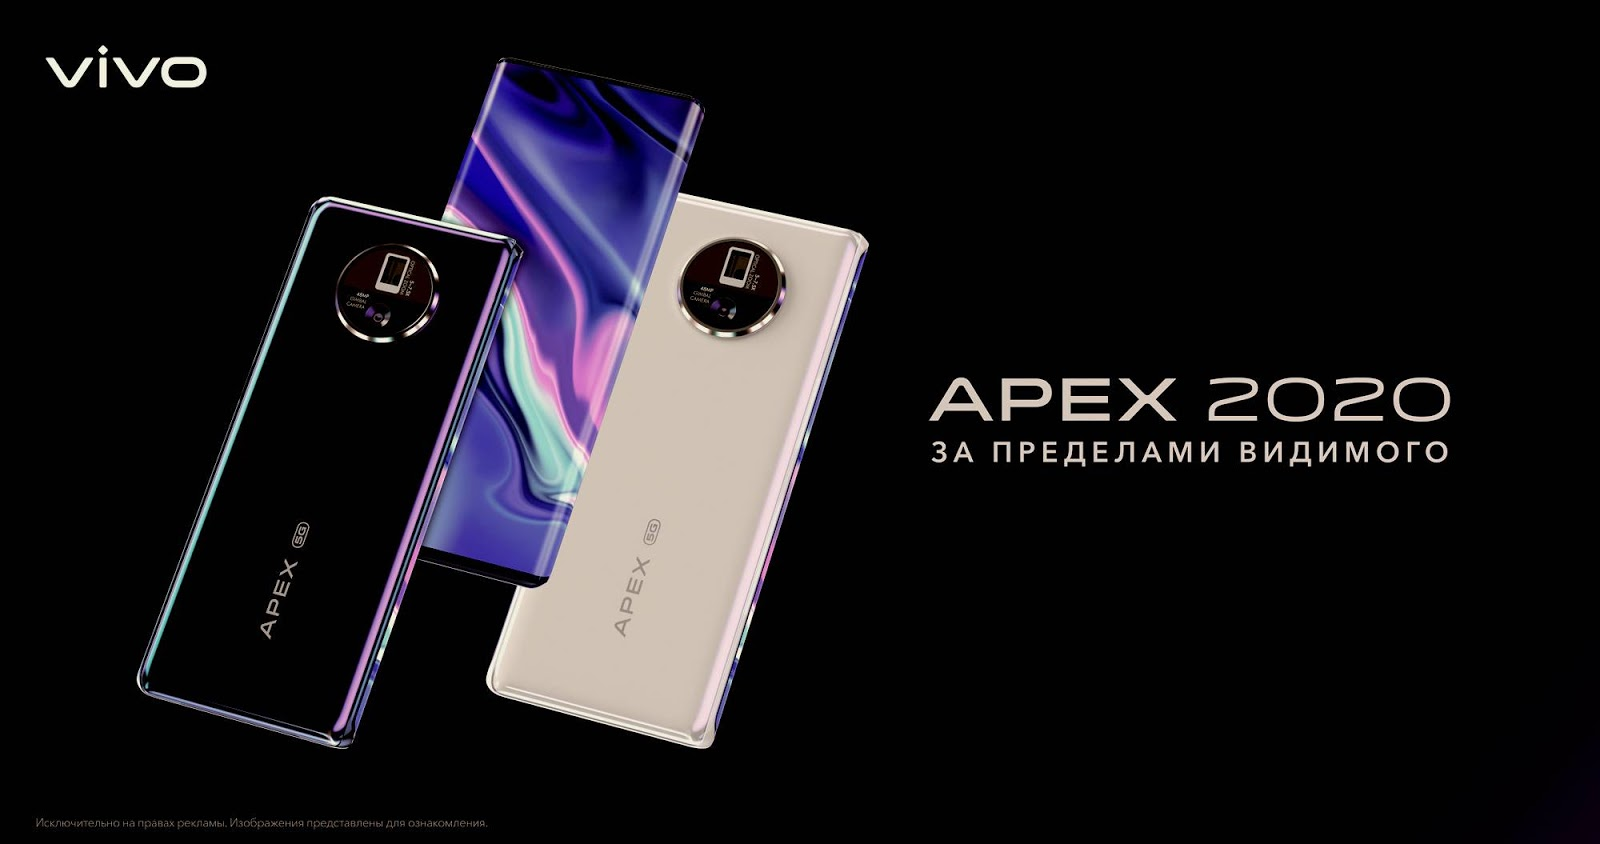 The revolutionary smartphone Vivo APEX 2020 in Russian-language video